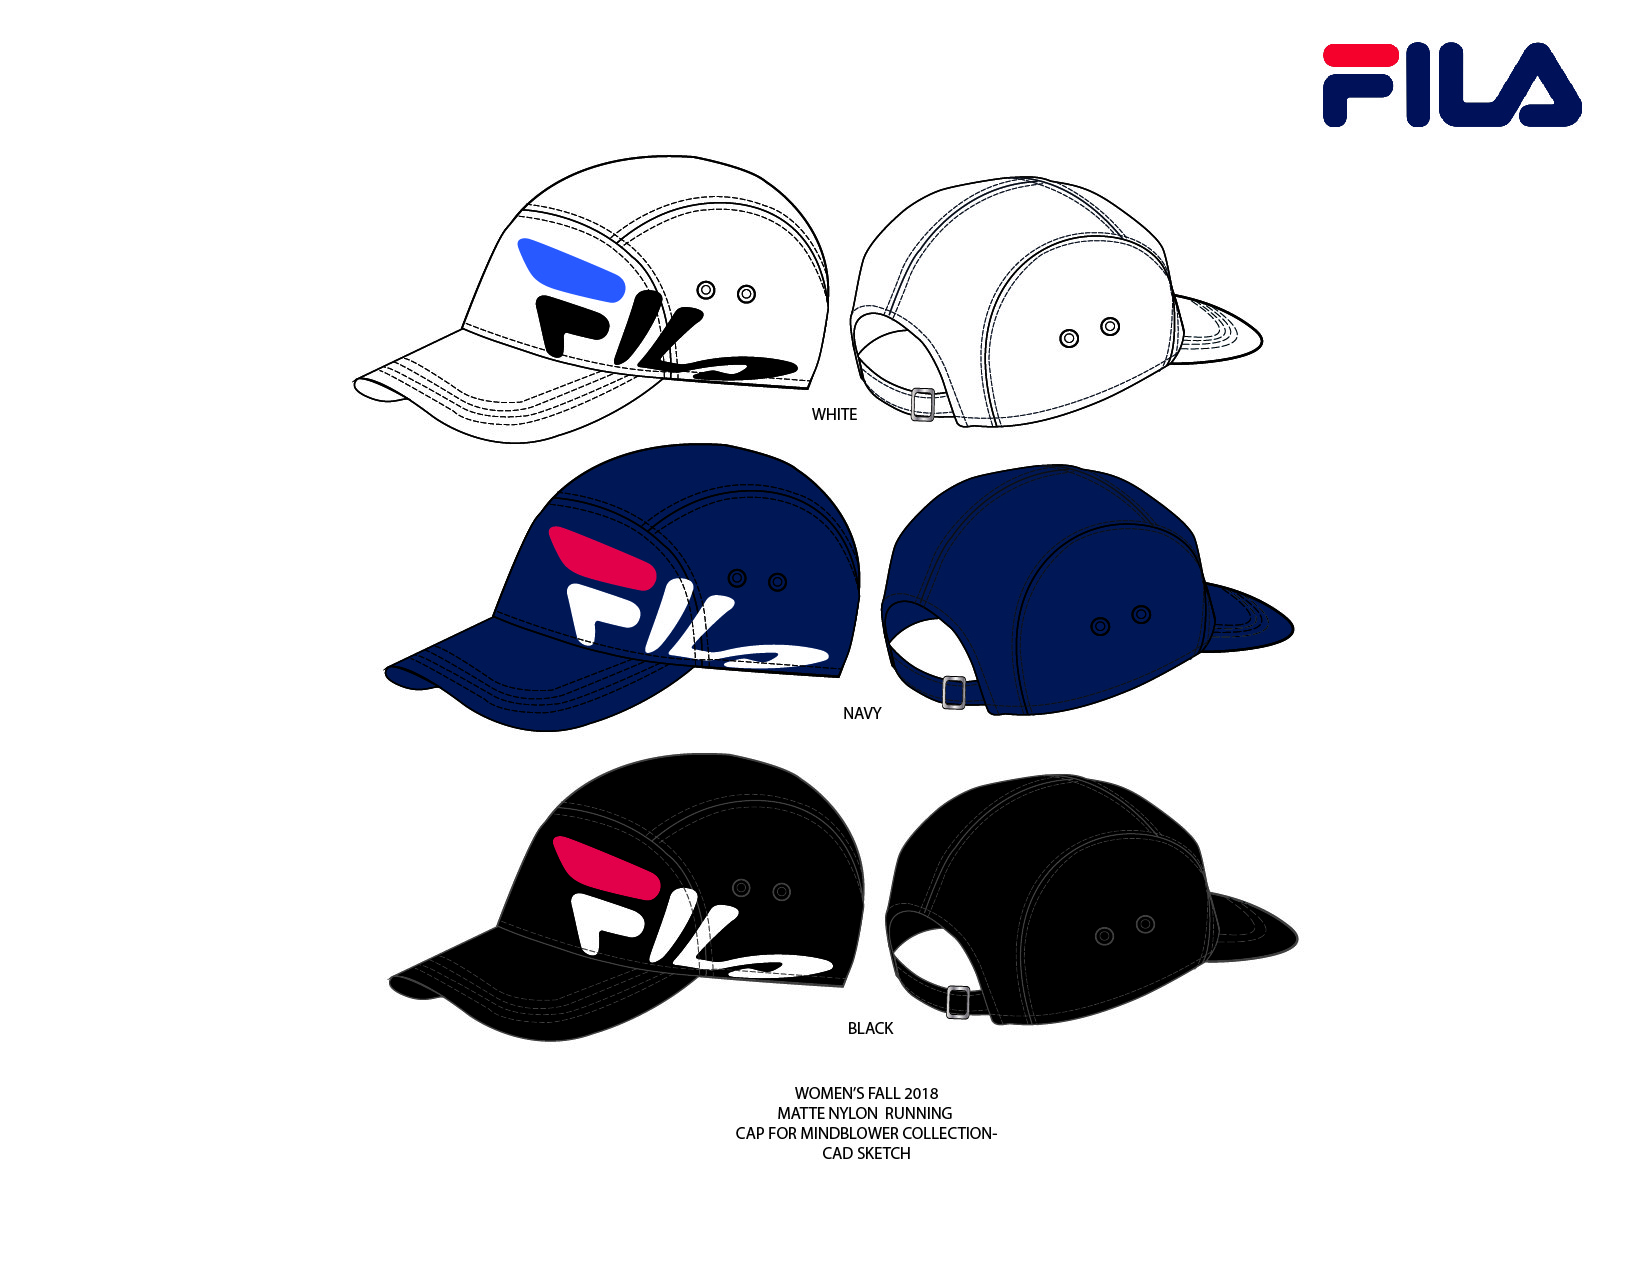 Mind Blower Cap Initial Designs for Fall 2018